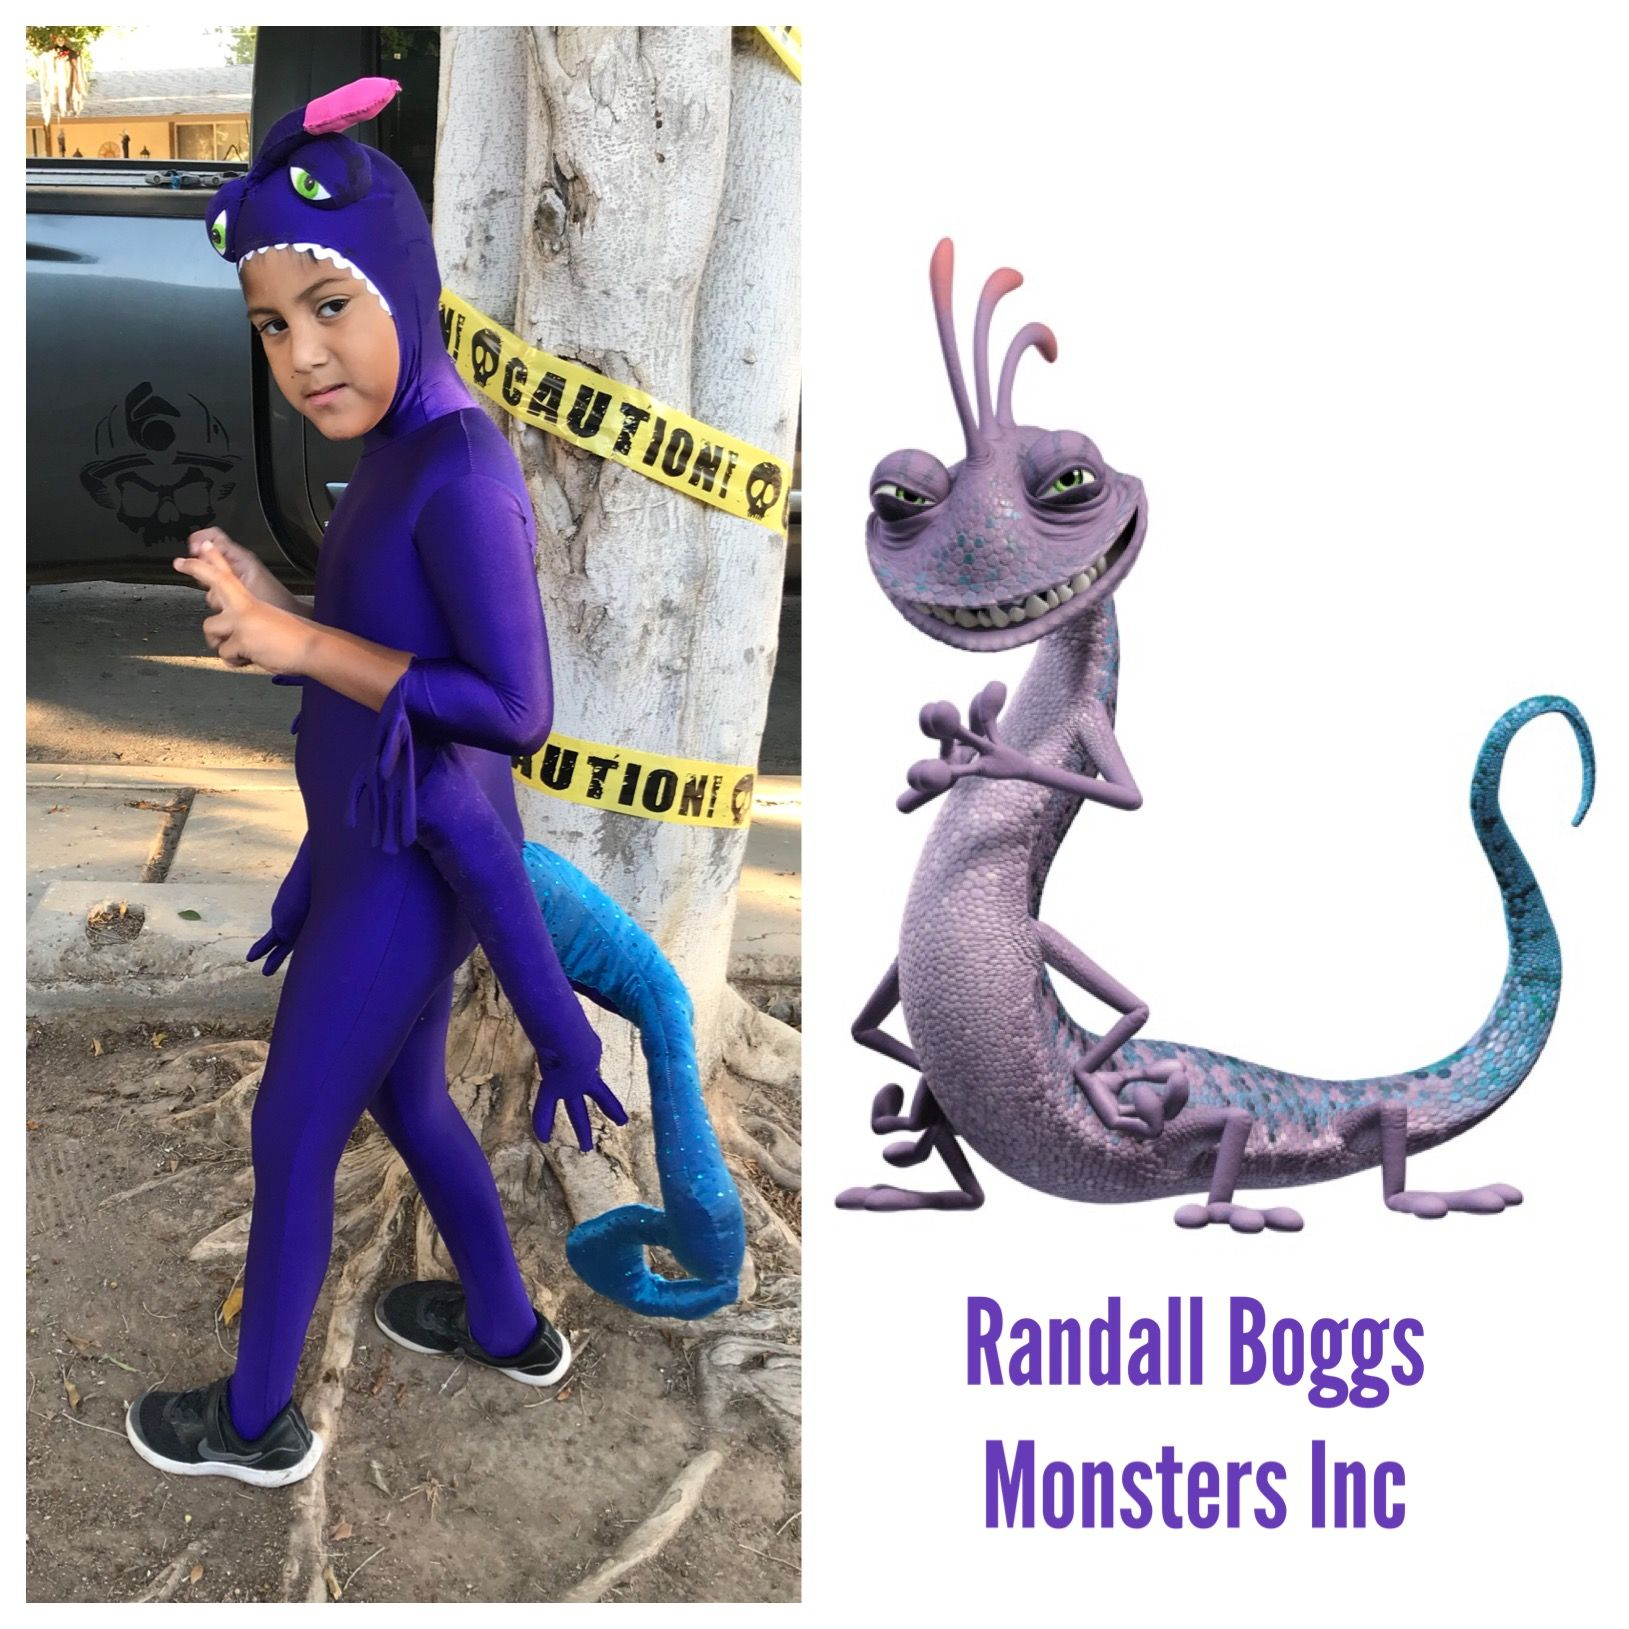 Randall Boggs From Monsters Inc Handmade Costume Made By My Mom Using A Pre Made Mo Monster Inc Costumes Monsters Inc Halloween Costumes Monsters Inc Halloween